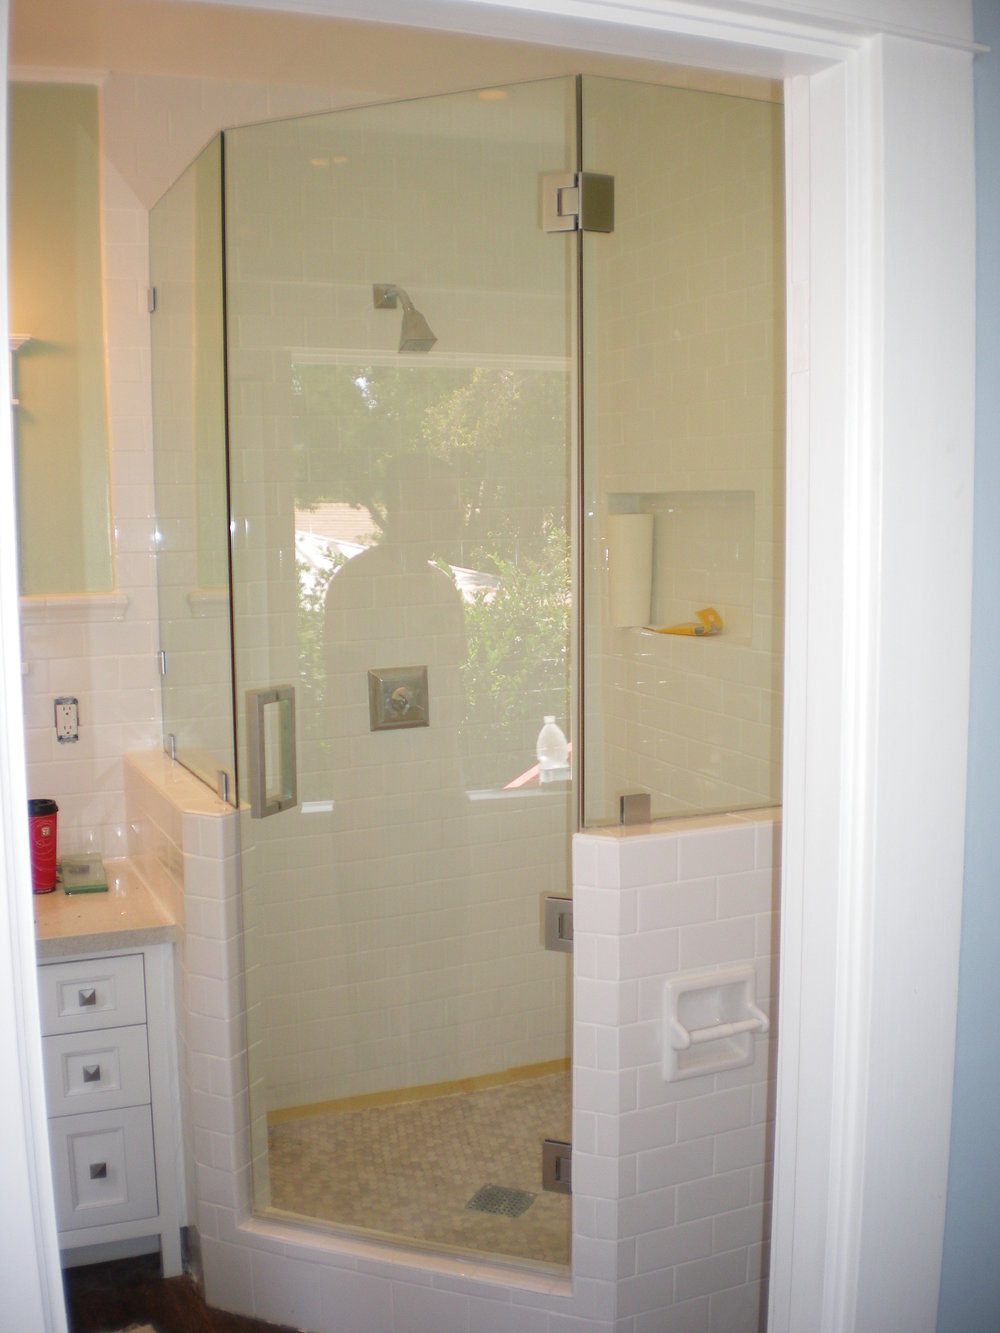 Shower-Doors-Residential-Photos-32.jpg